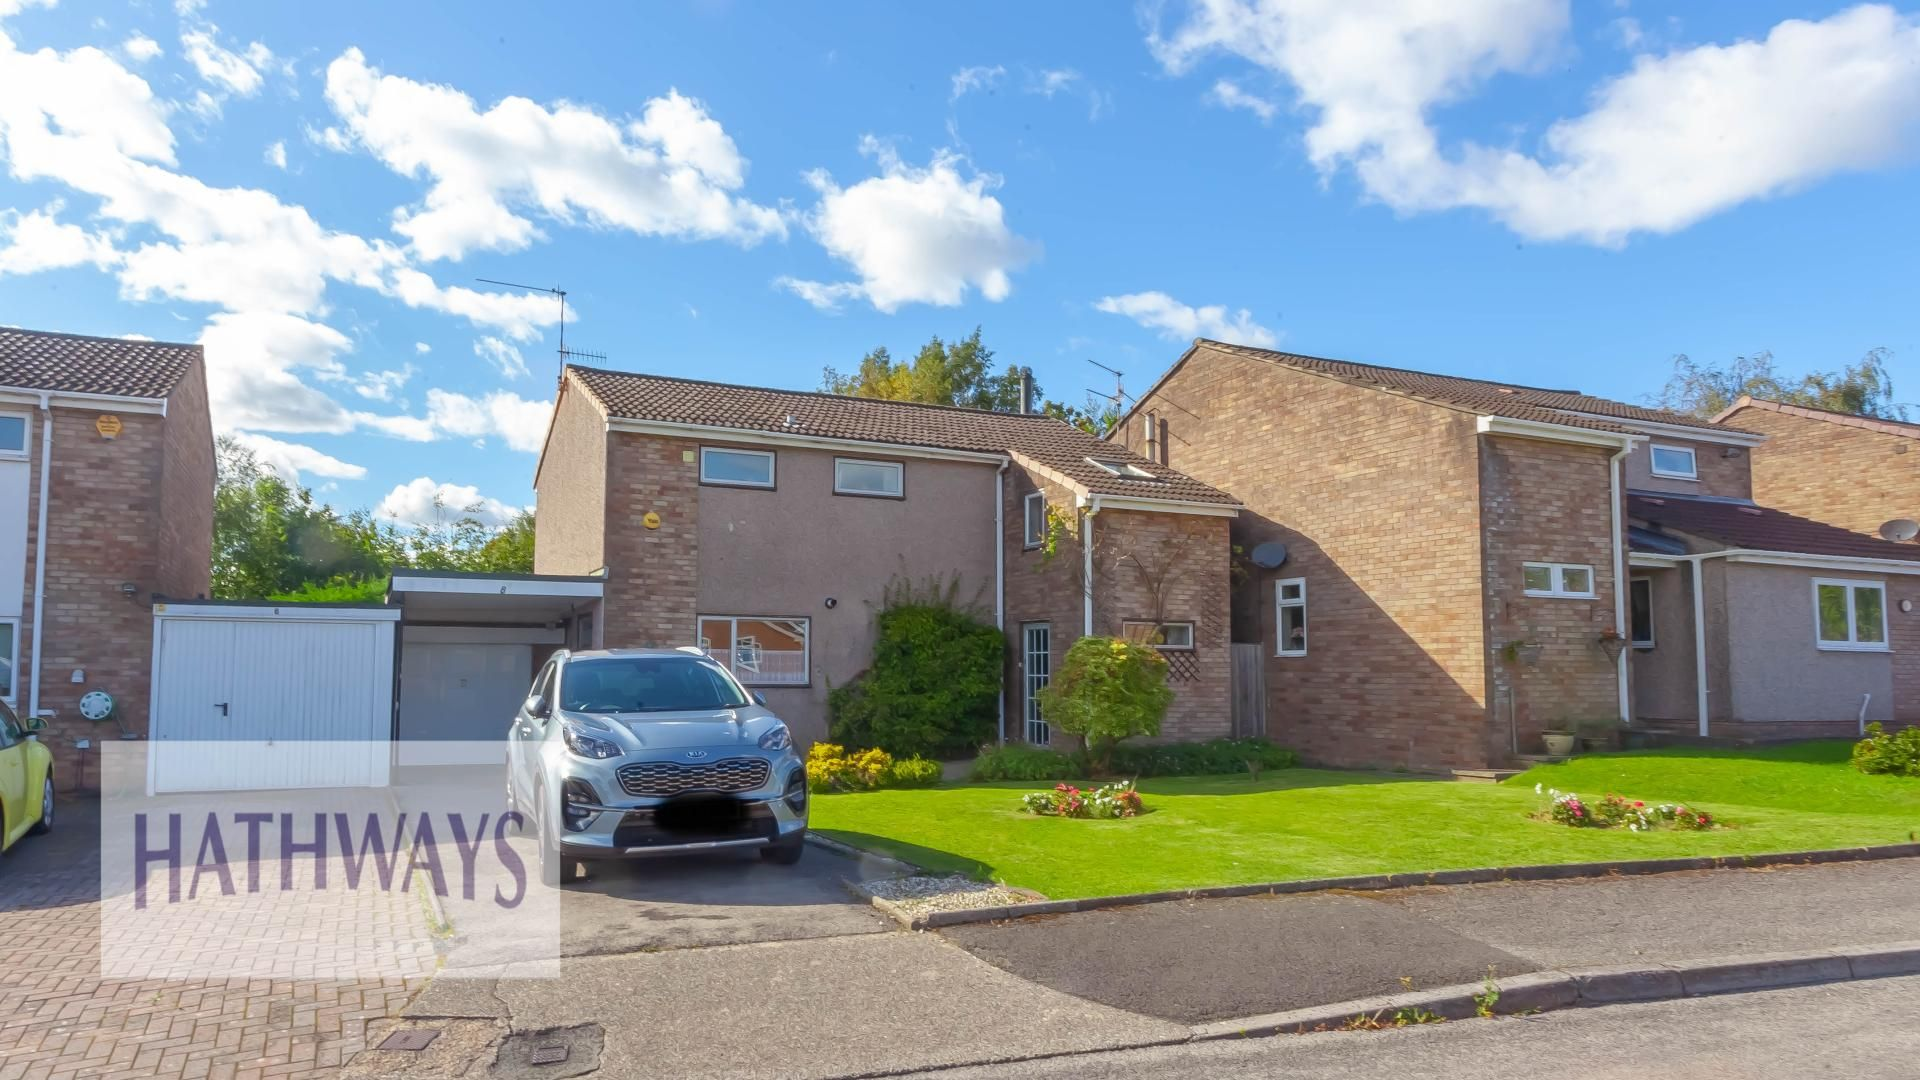 4 bed house for sale in Weldon Close, NP44